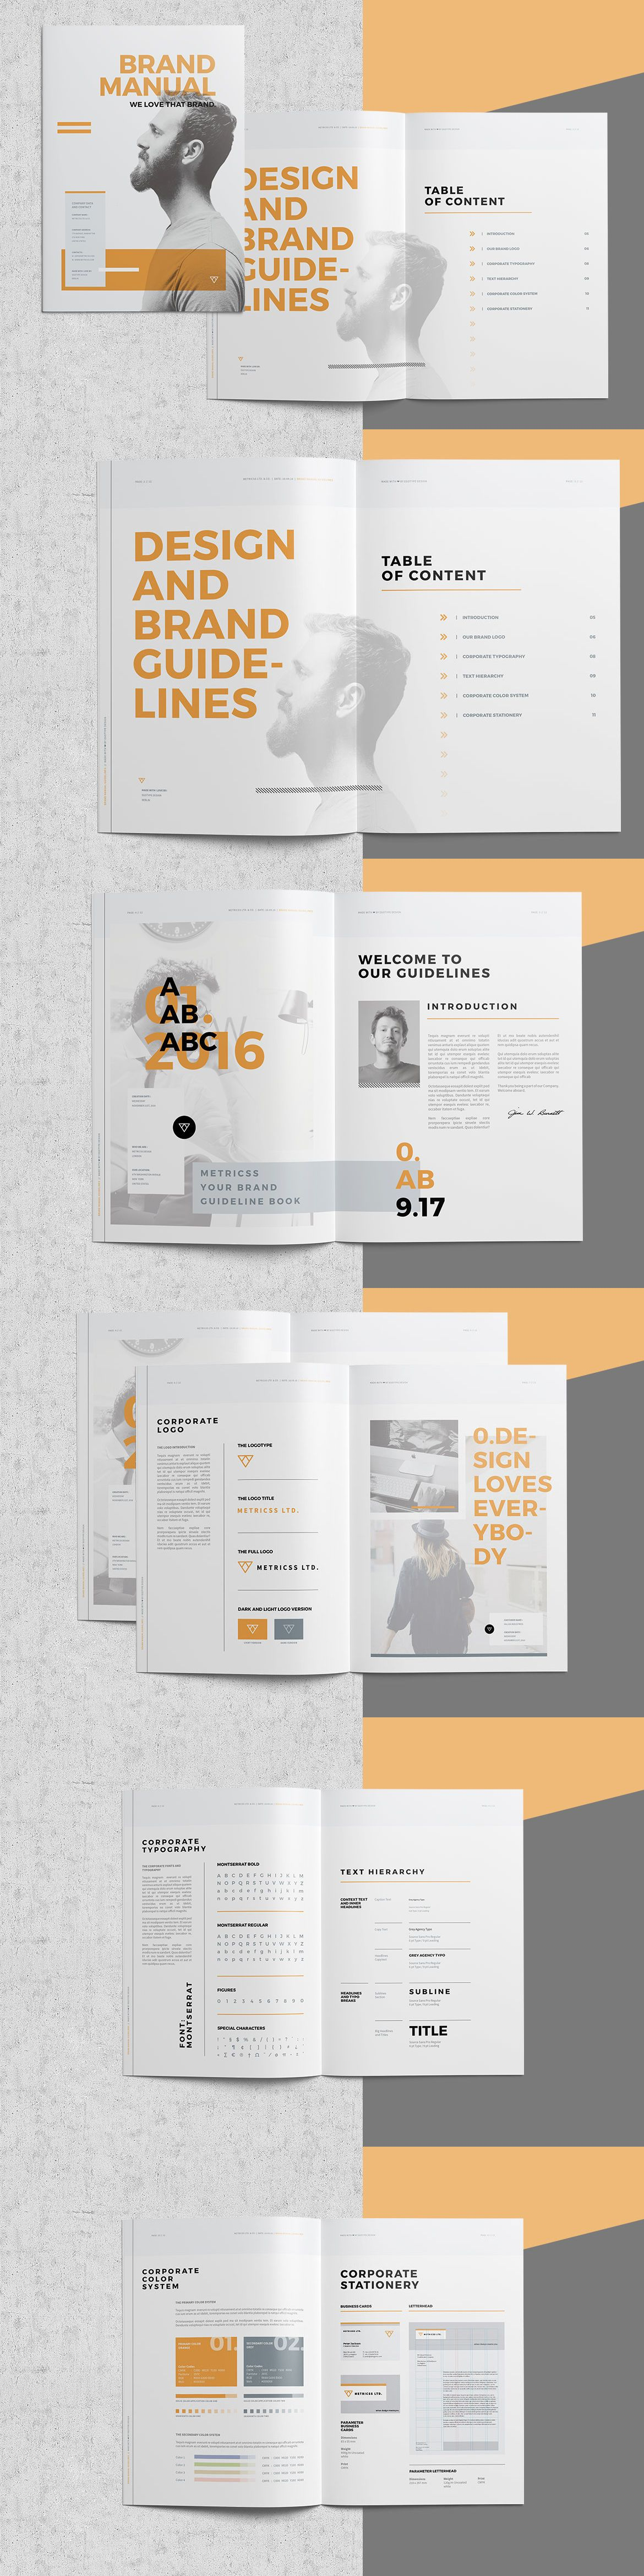 Brand Manual Brochure Template InDesign INDD | Brochure Templates ...